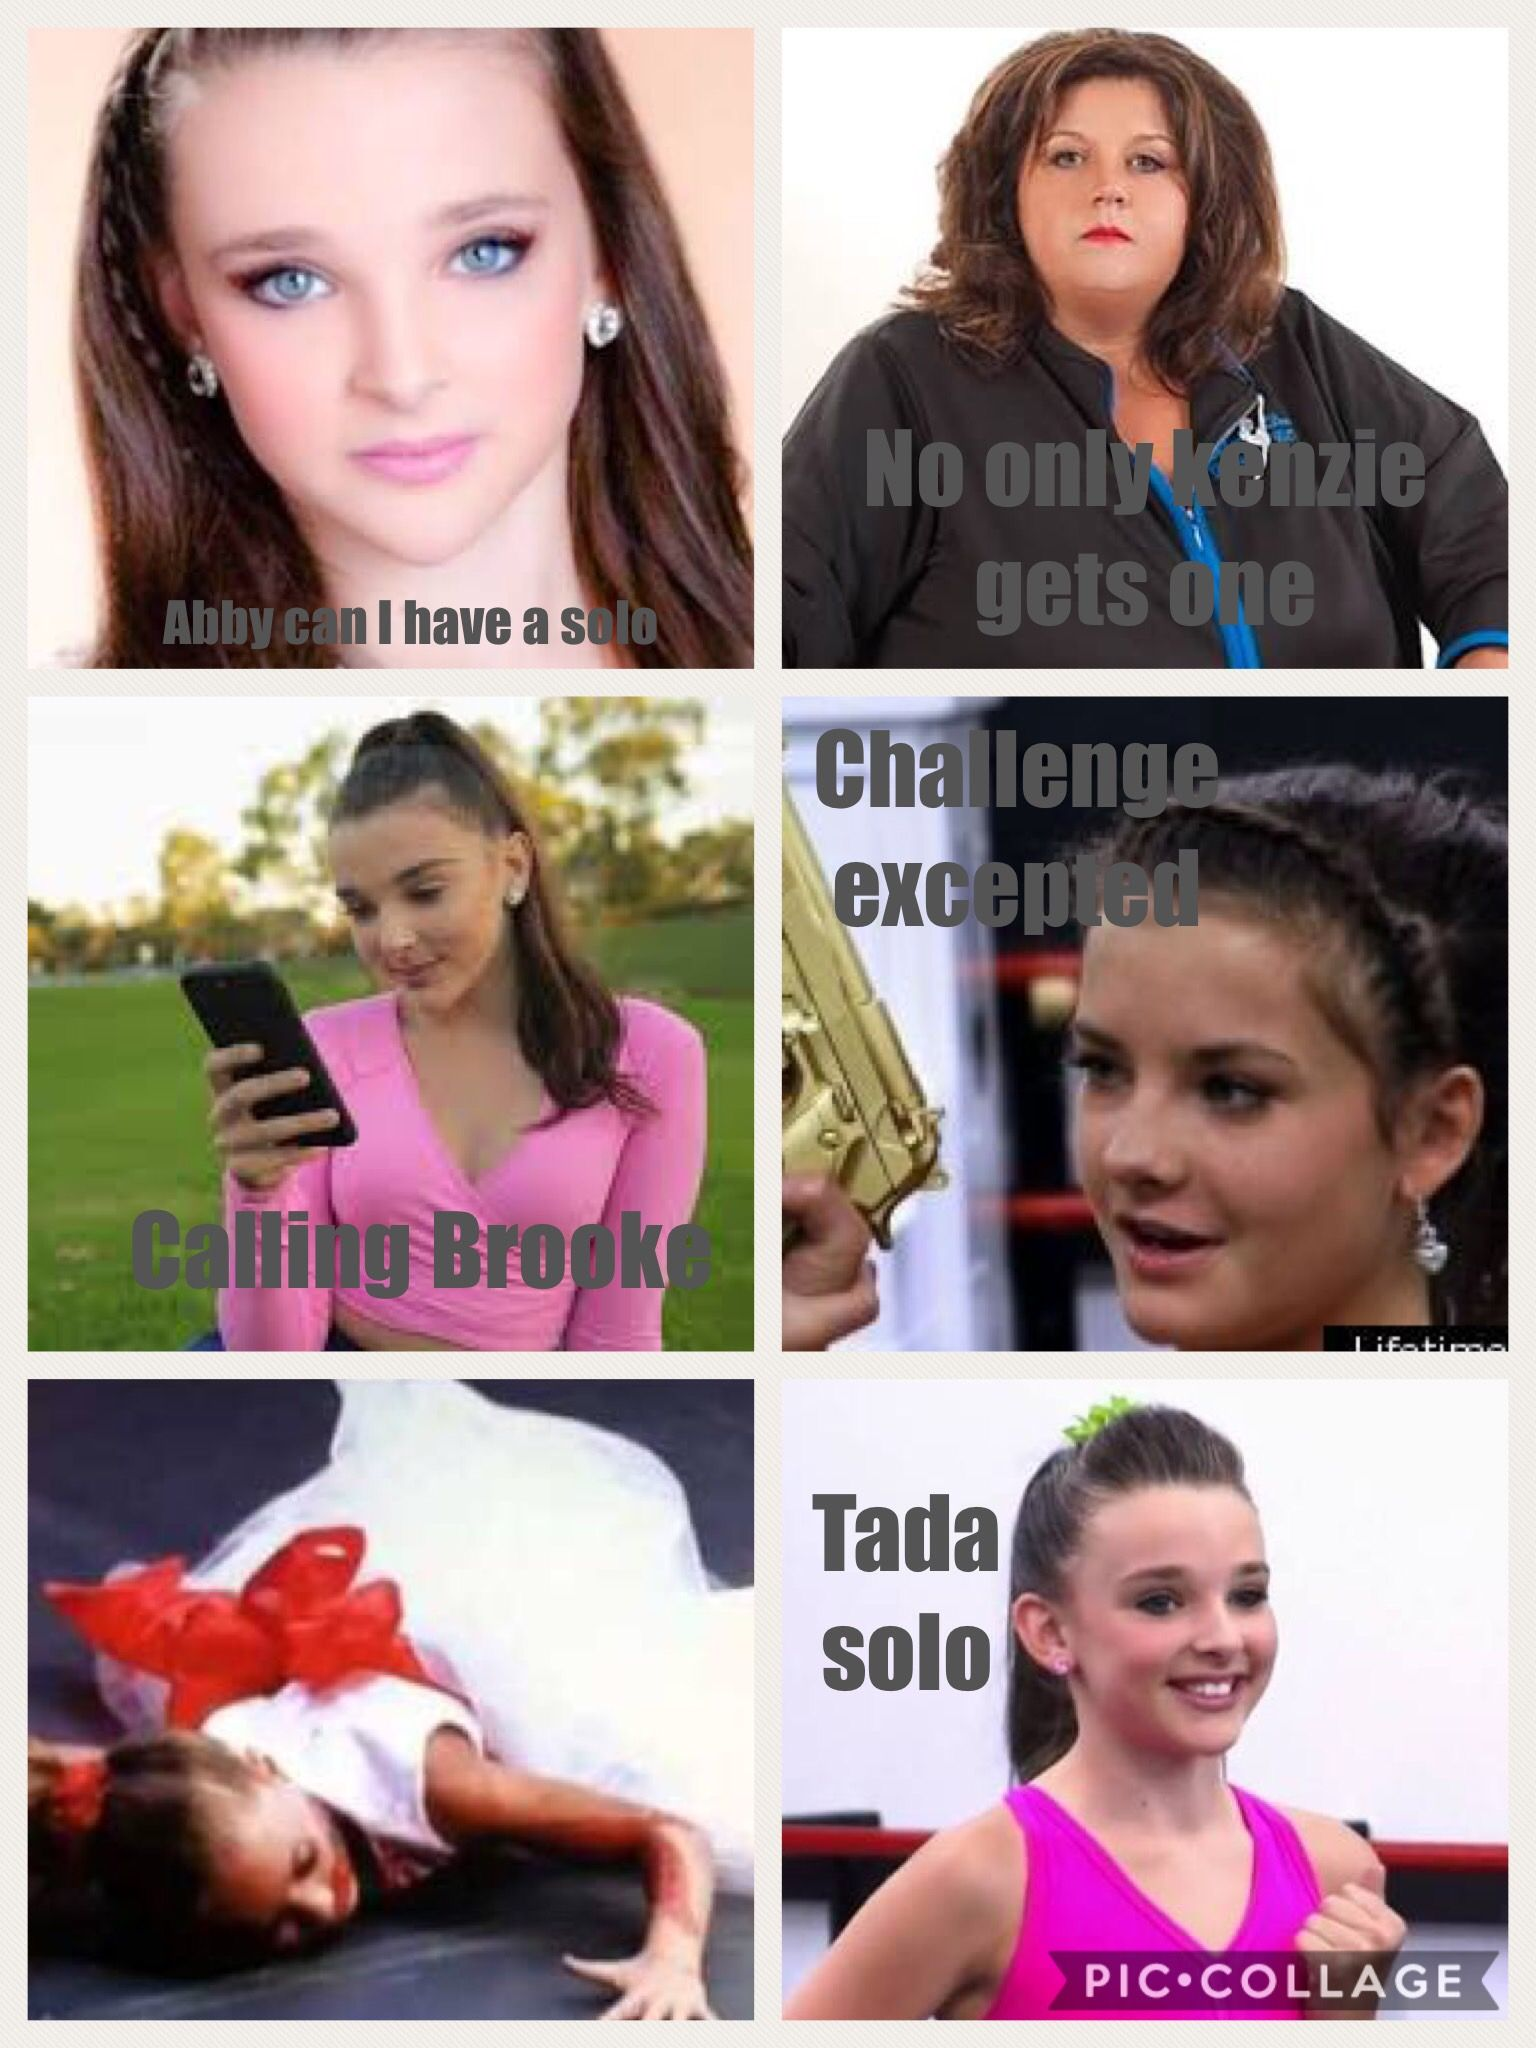 Pin By Stacey Burgess On Dance Moms Dance Moms Memes Dance Moms Comics Dance Moms Funny